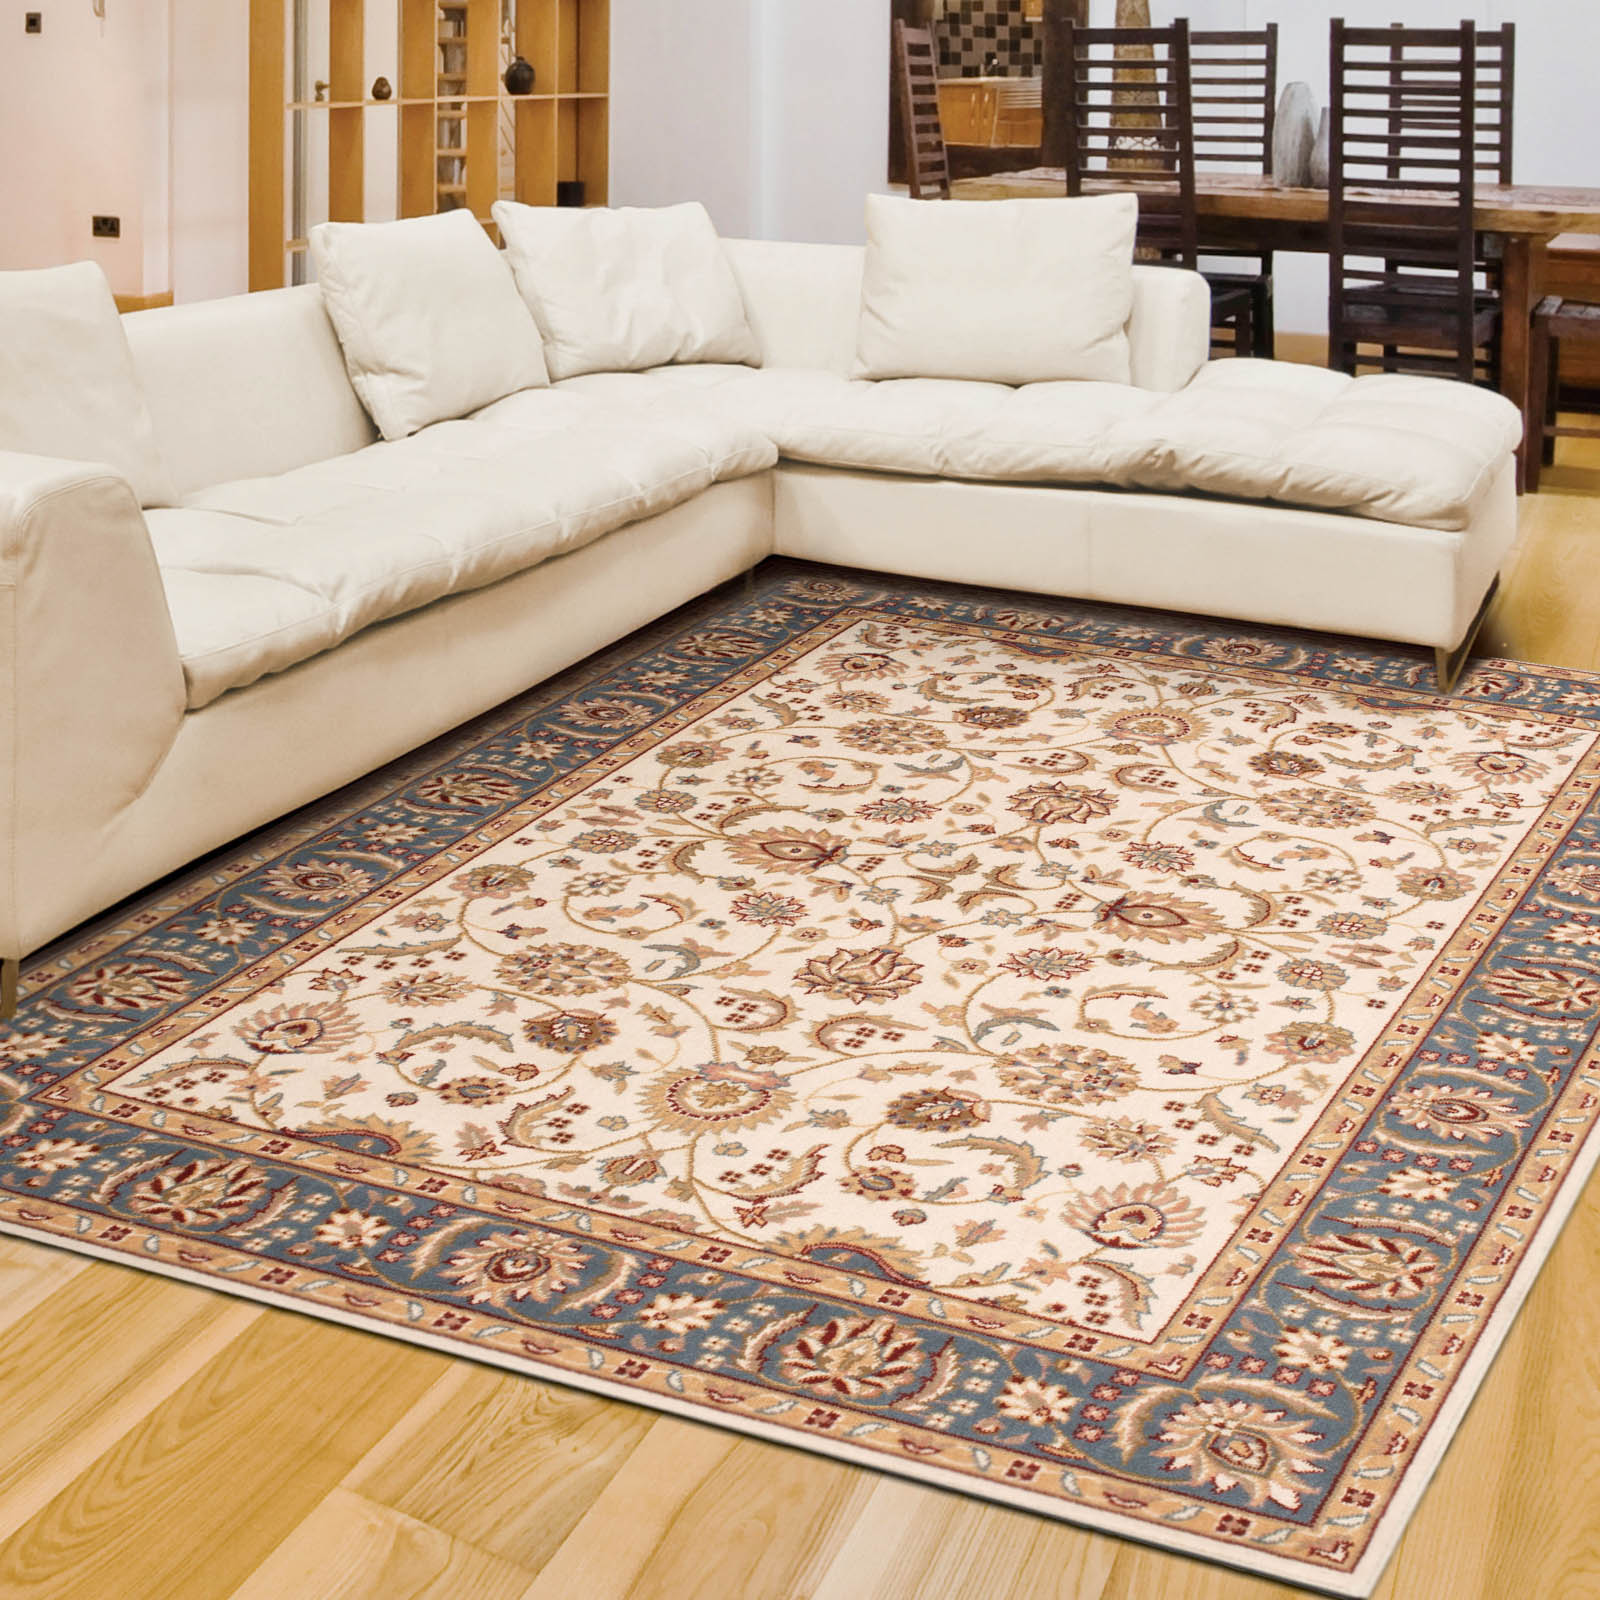 Artena Rugs ATN02 in Ivory and Blue